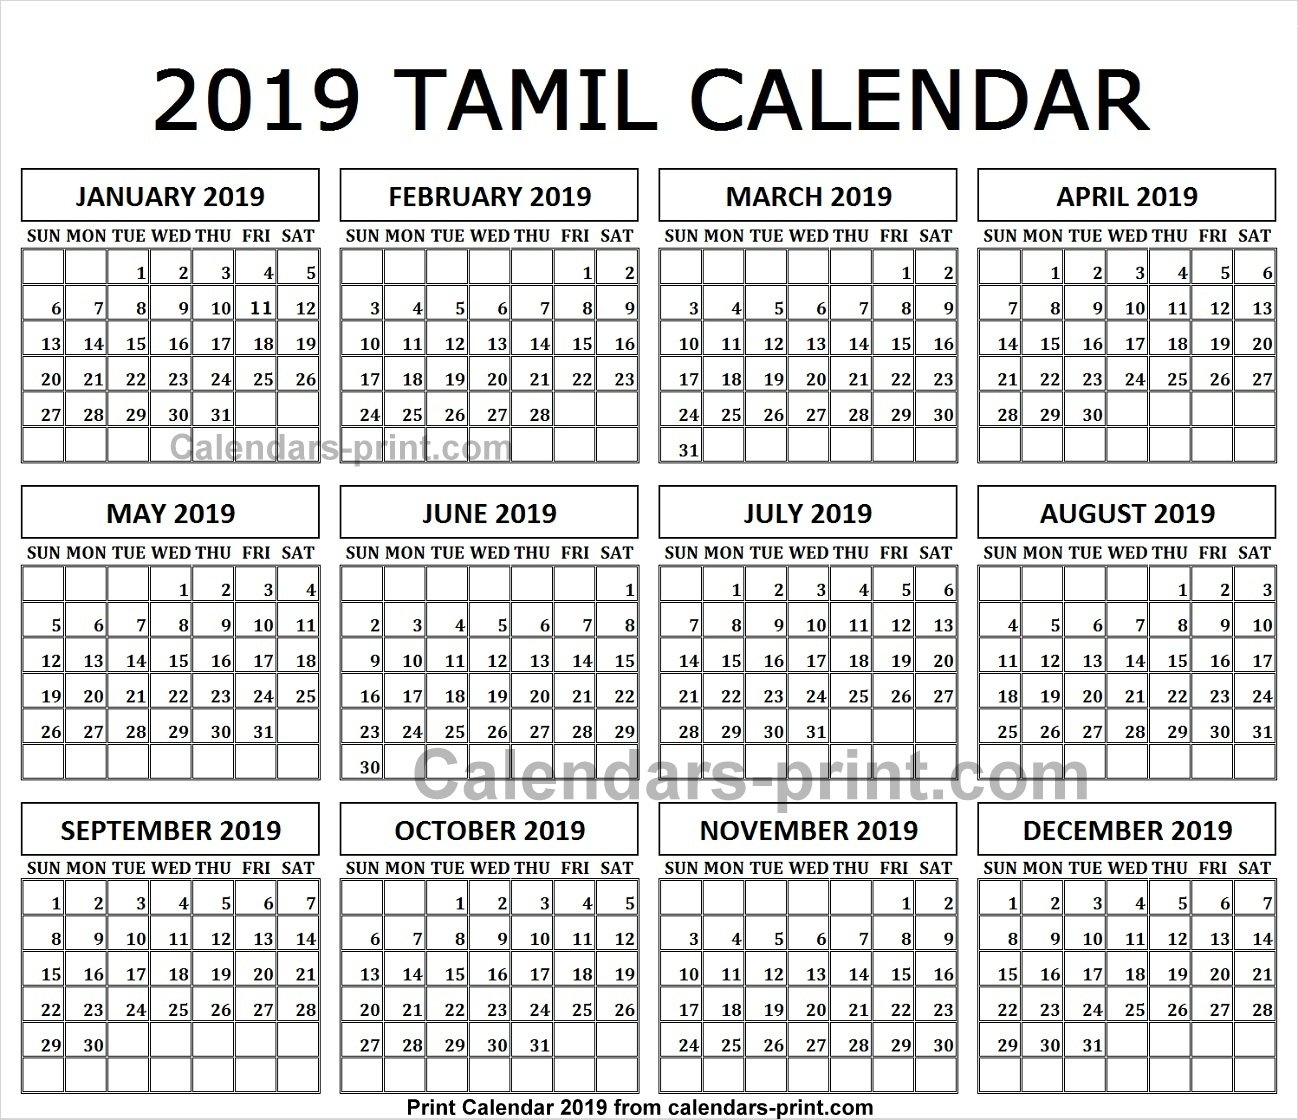 Monthly Calendar 2019 Tamil Printable Template With Notes   Holidays Calendar 2019 Tamil